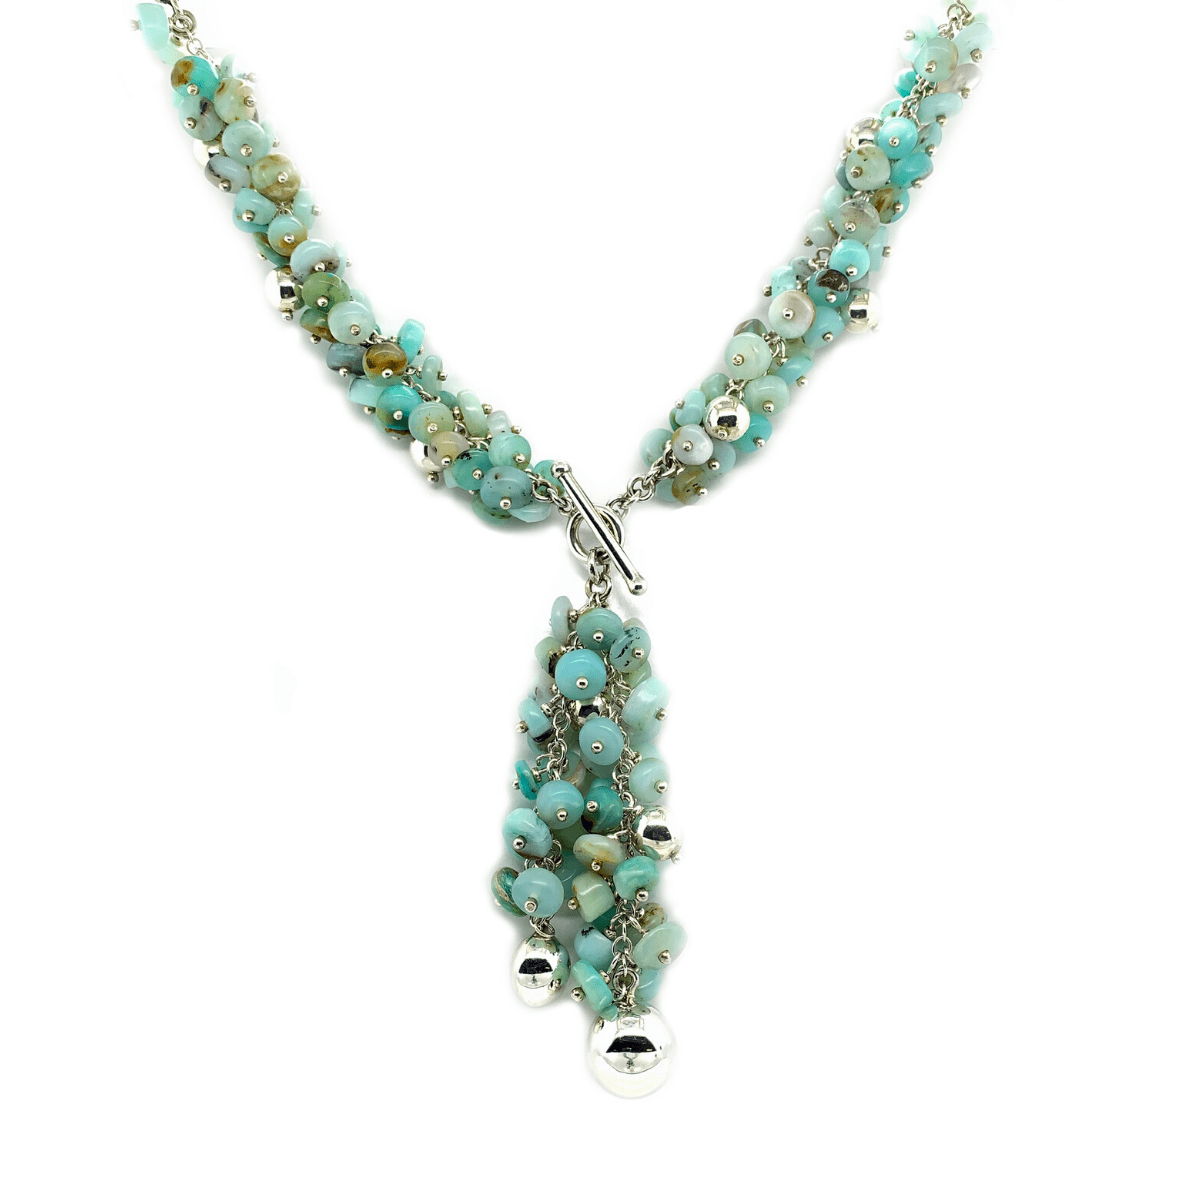 Andean Opal Clusters & Sterling Silver Balls Toggle Necklace - Qinti - The Peruvian Shop